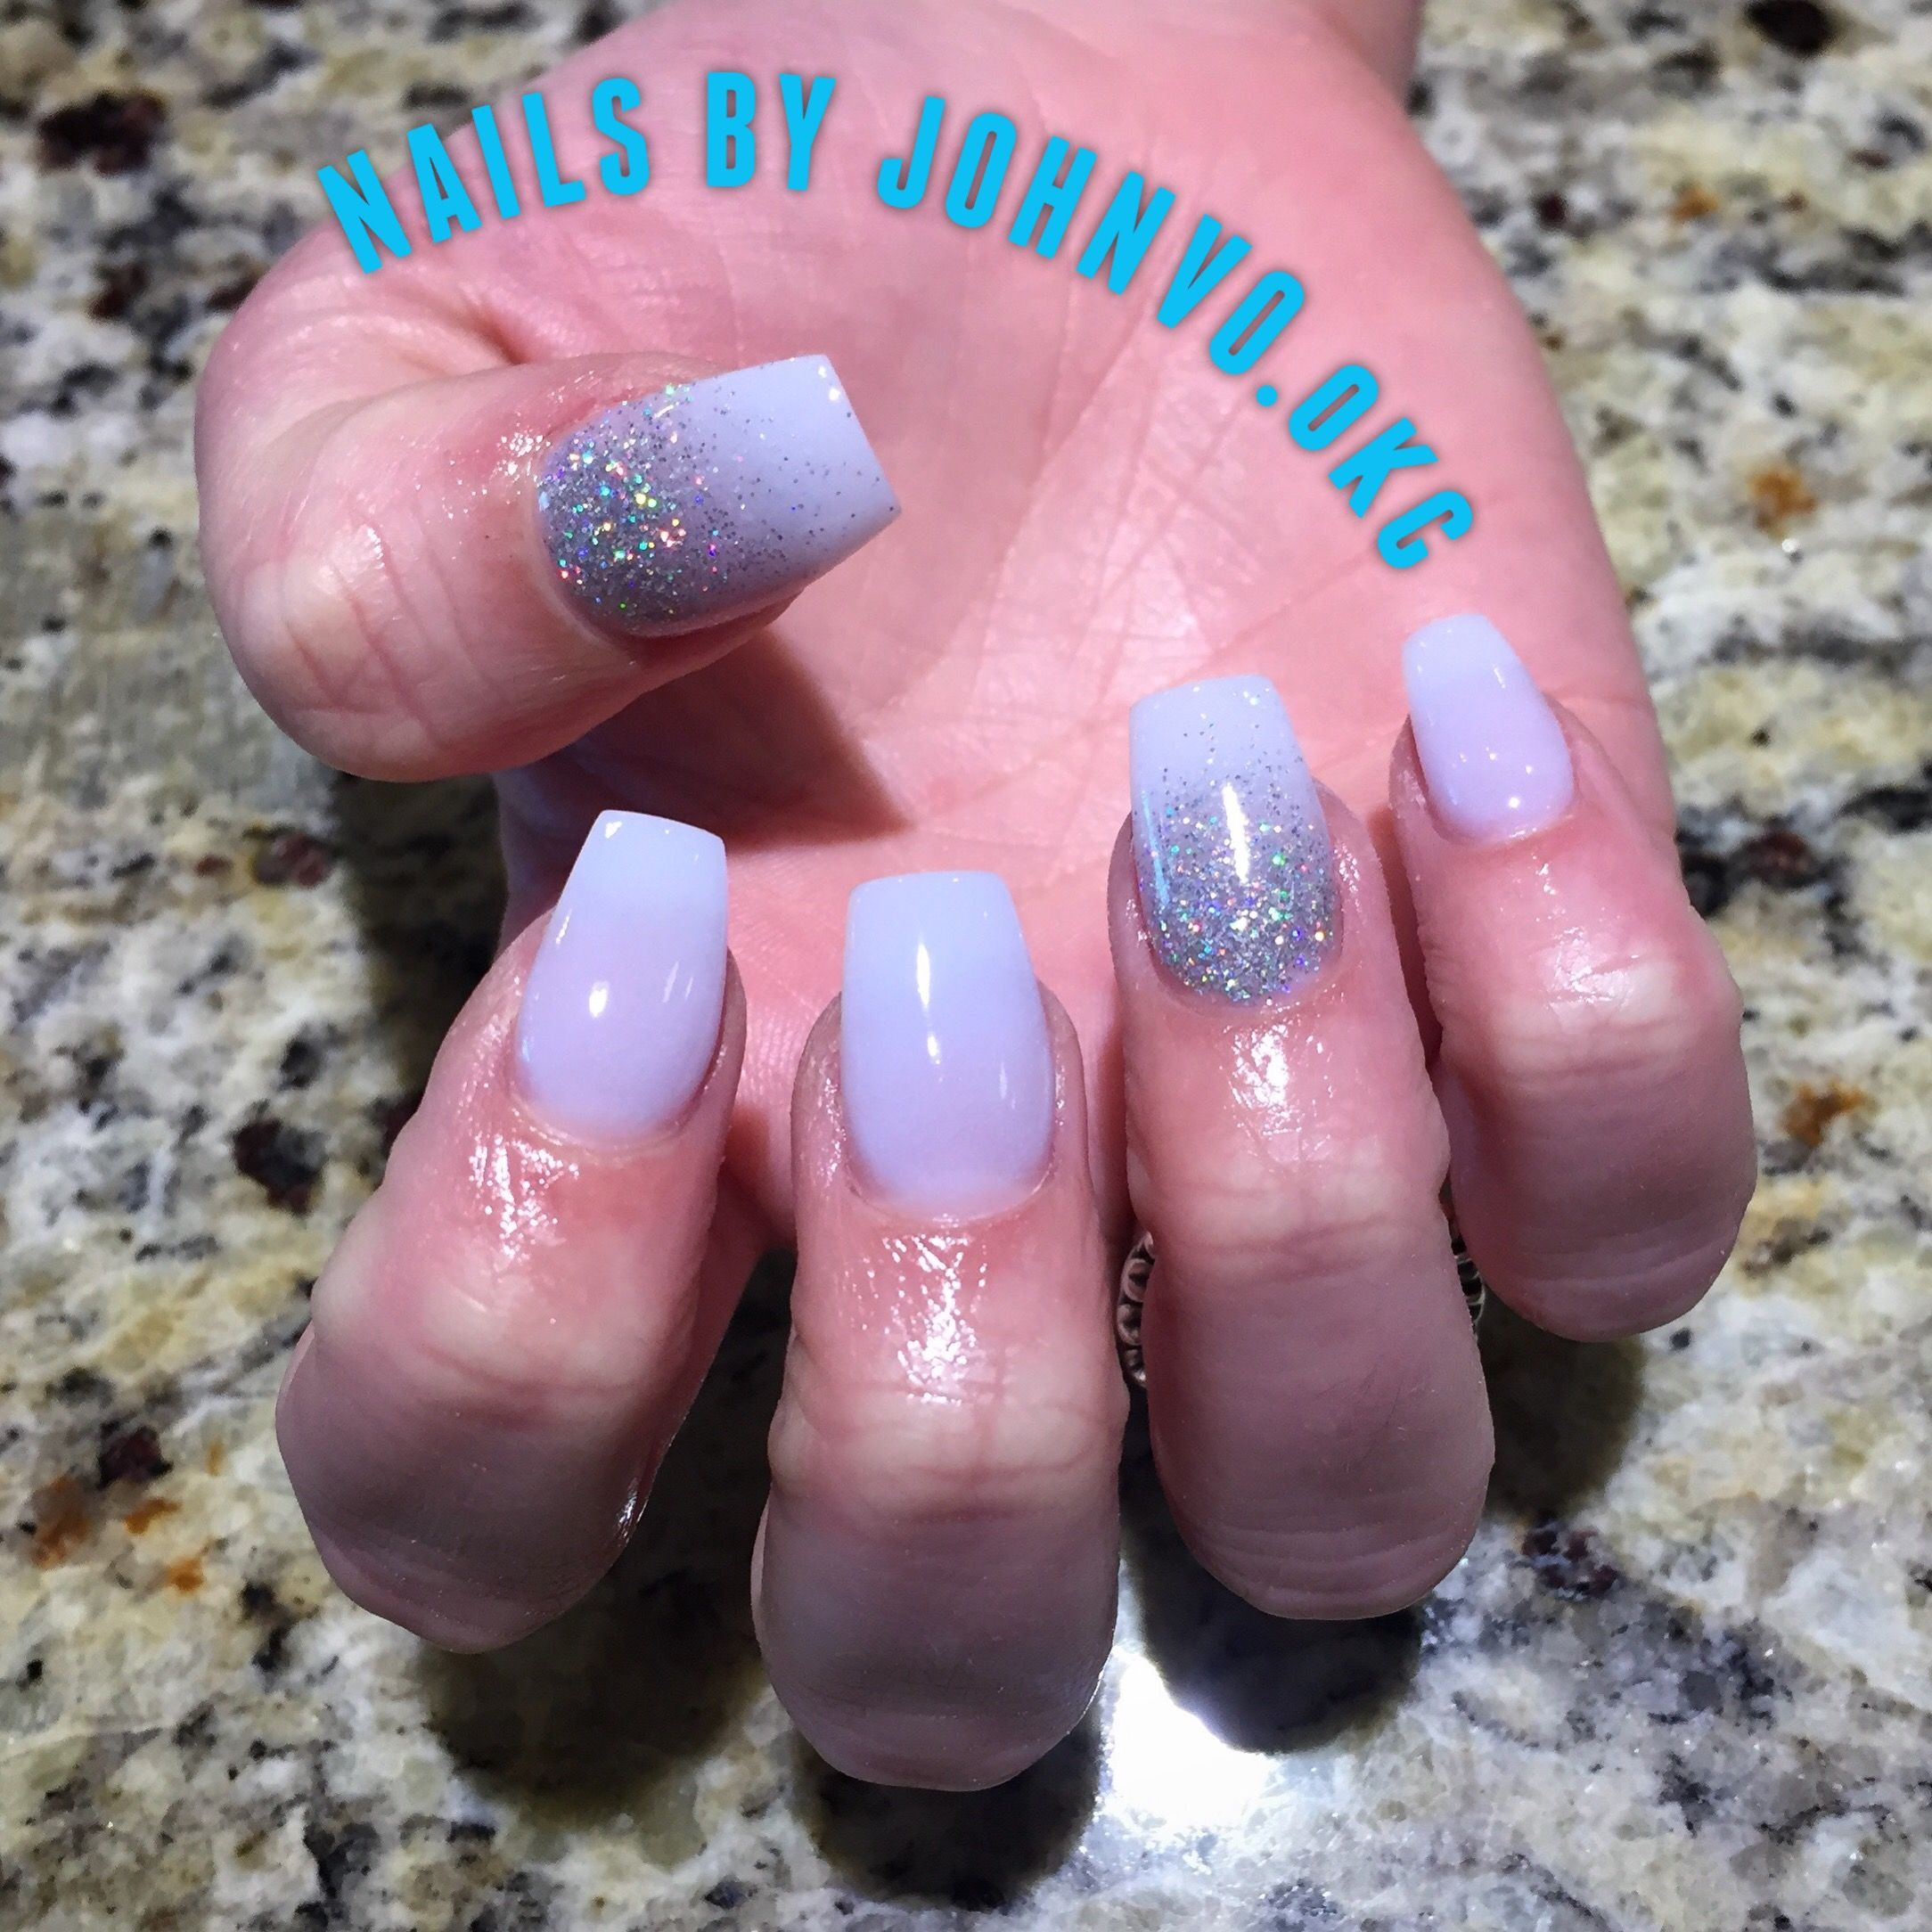 Dip Powder Ballerina Shaped Nails With Tip Extensions With Added